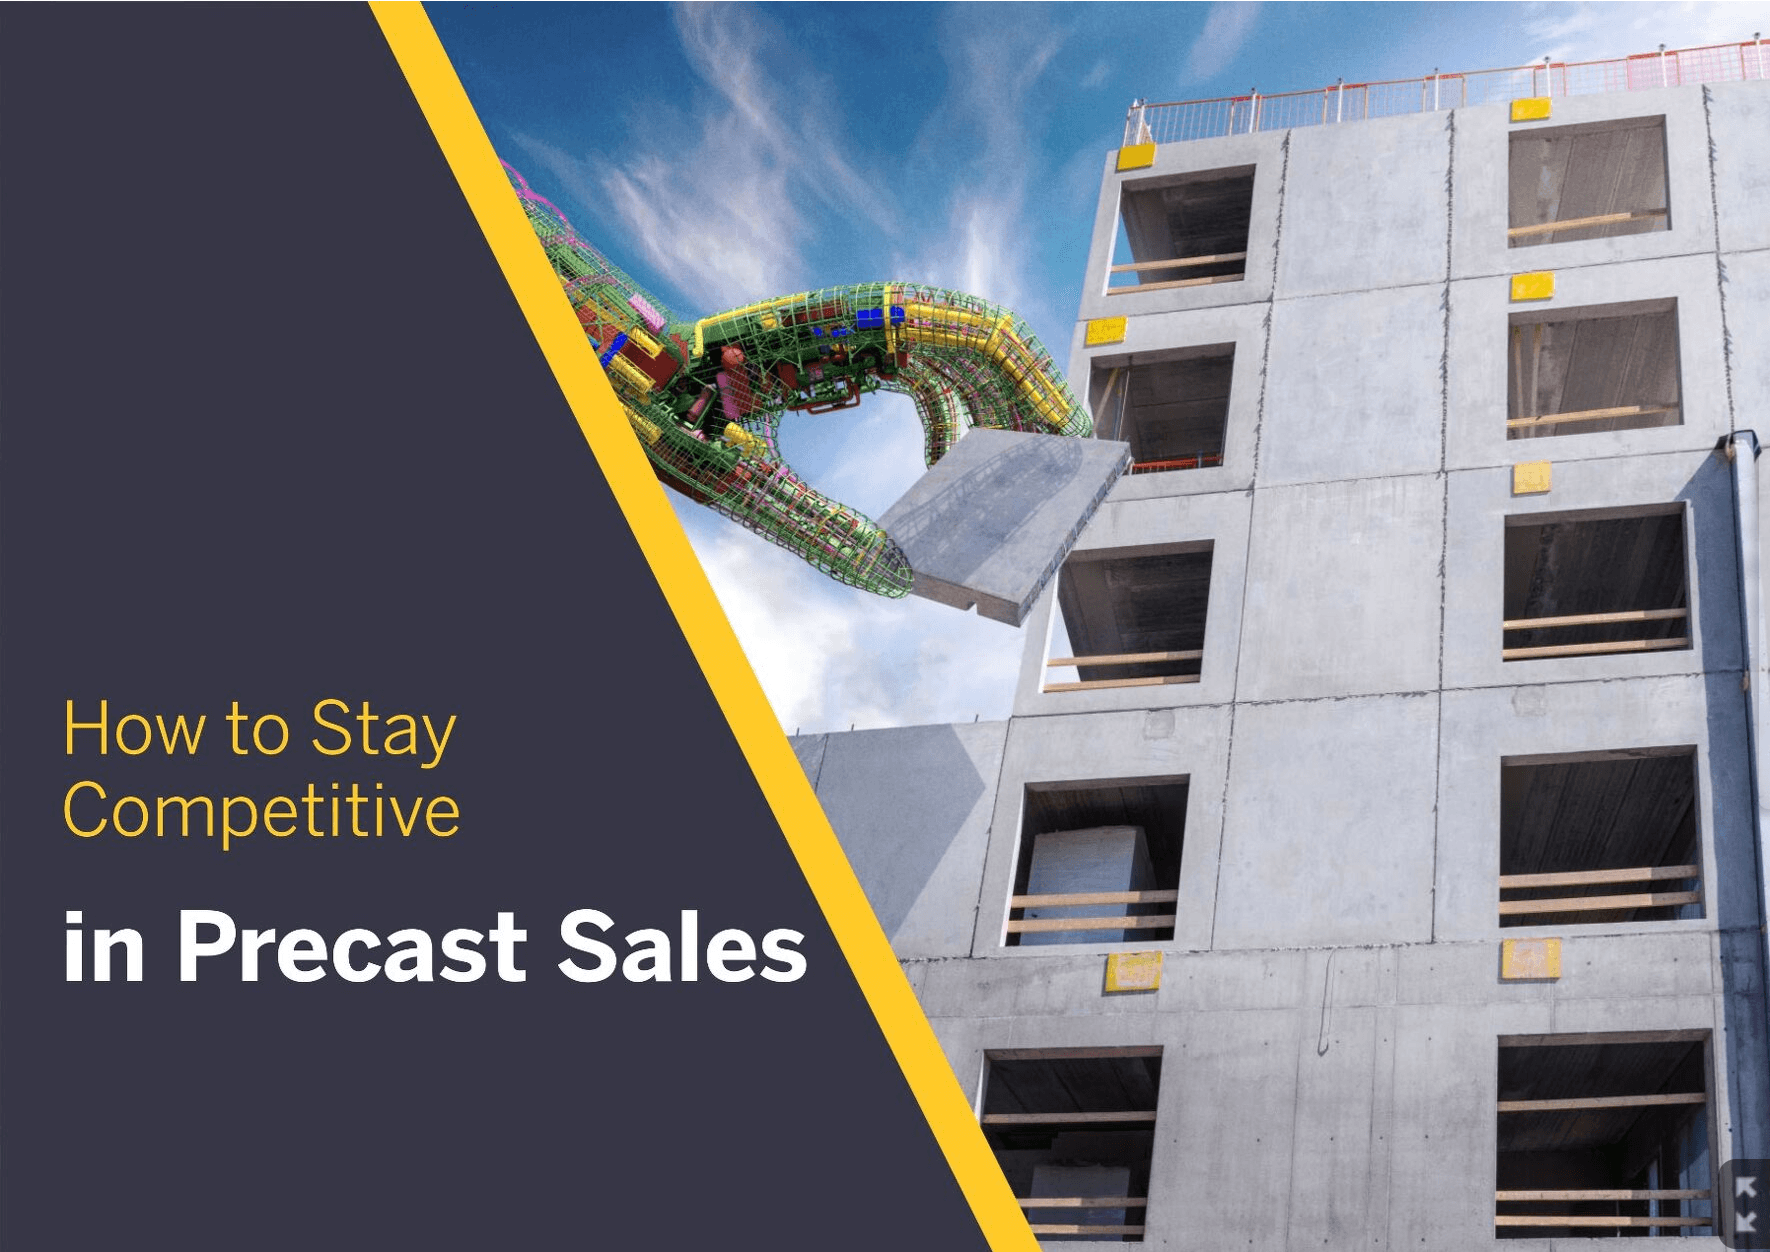 Are You Ready to Stay Competitive in Precast Sales? - Free eBook